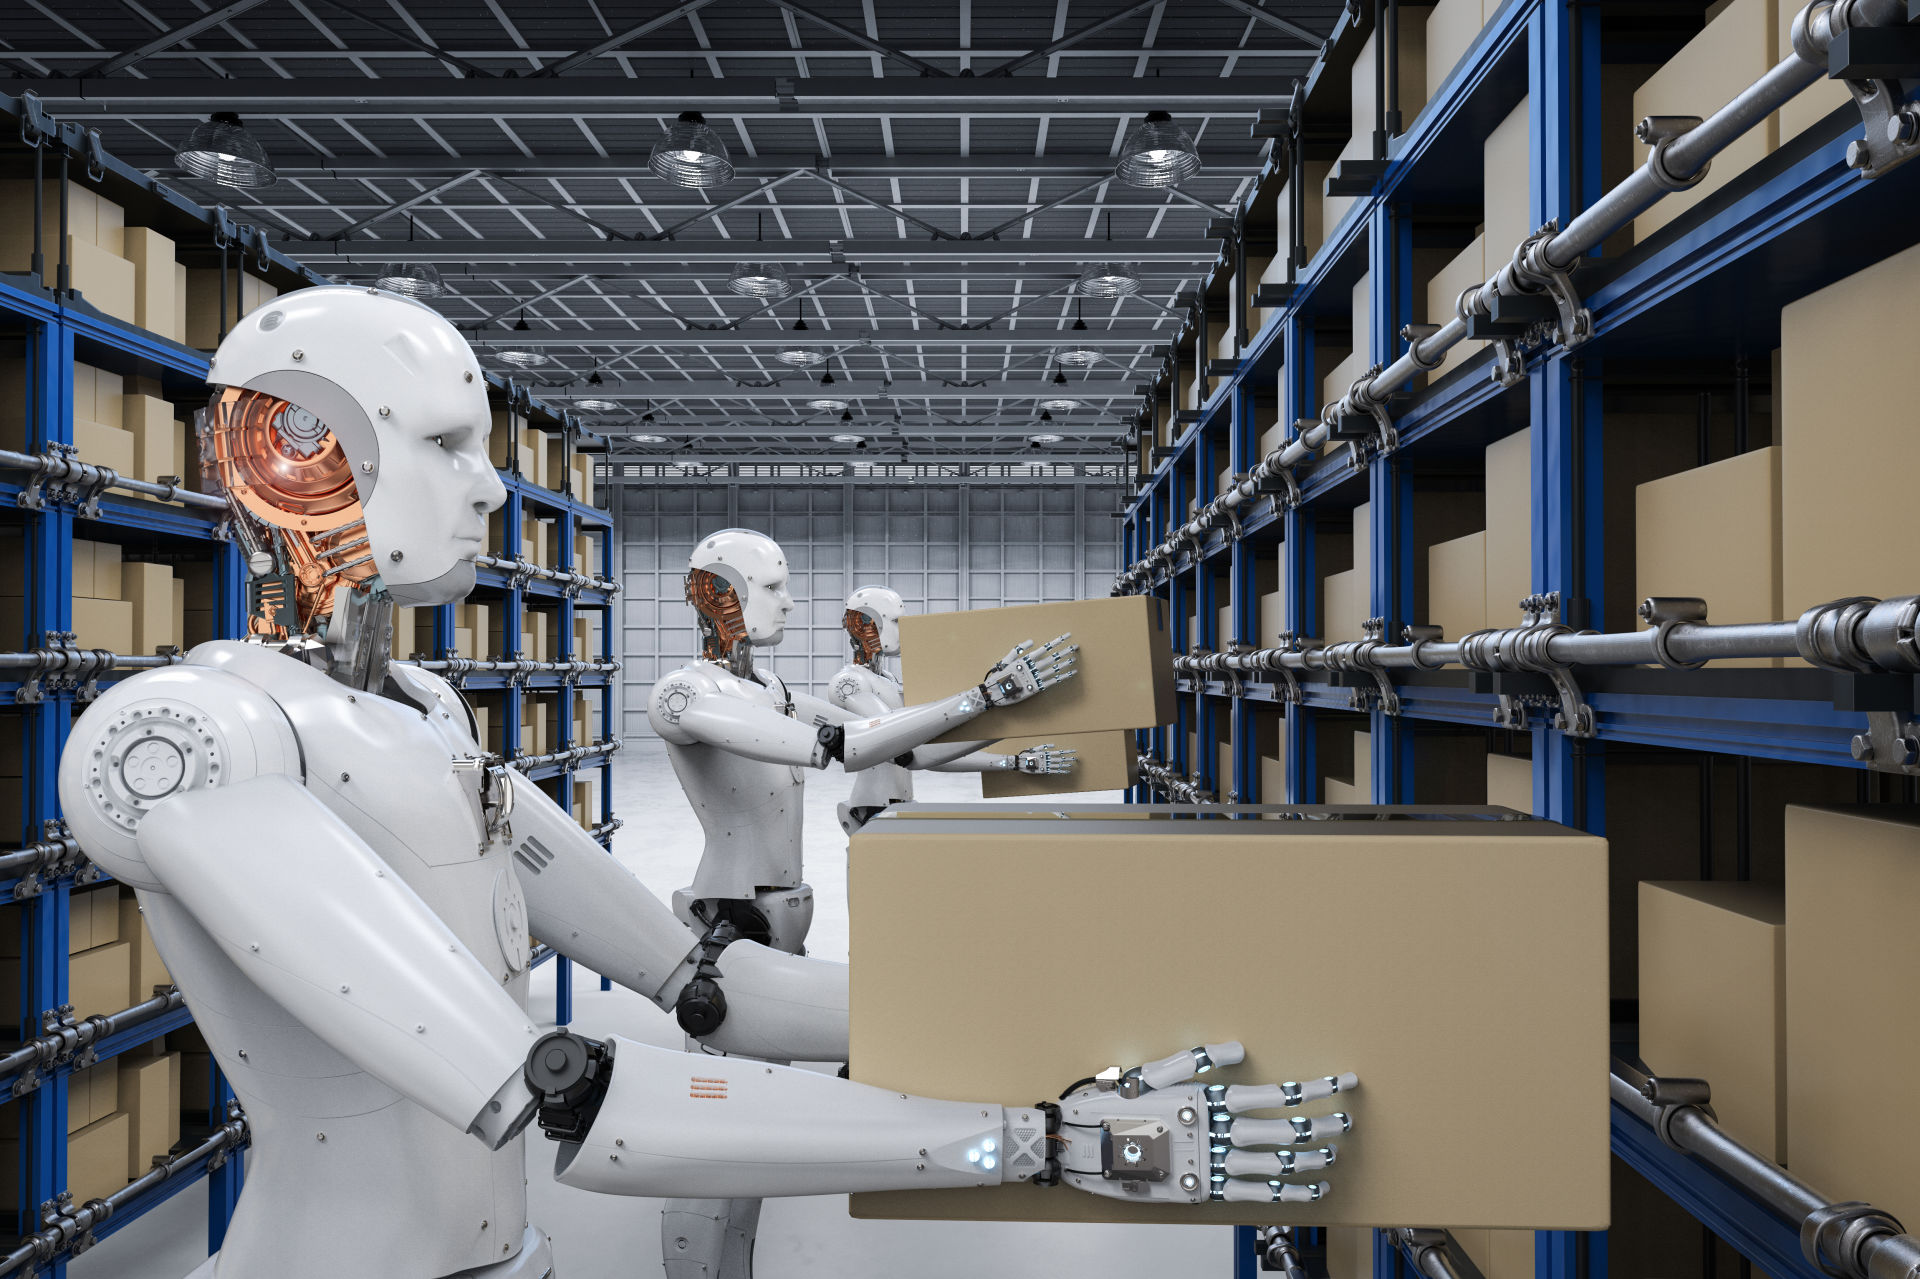 Warehouse Digitalization: The Future of Warehousing